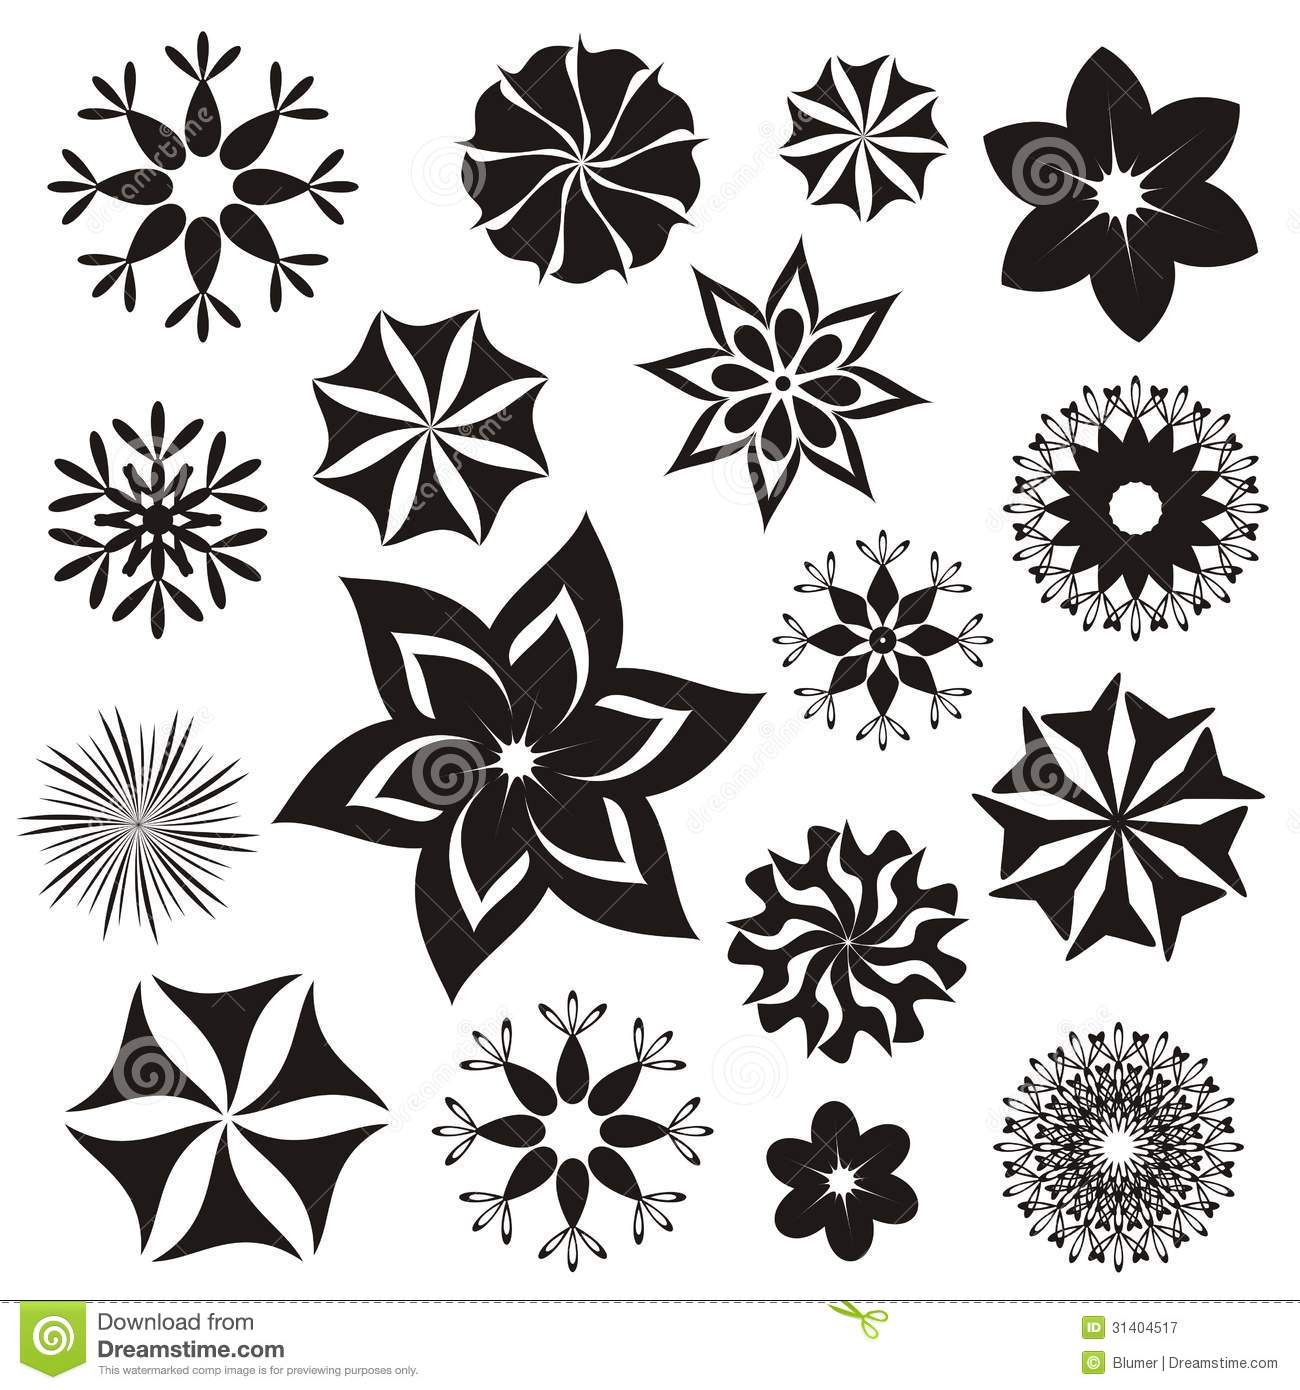 Flower Symbols Royalty Free Stock graphy Image